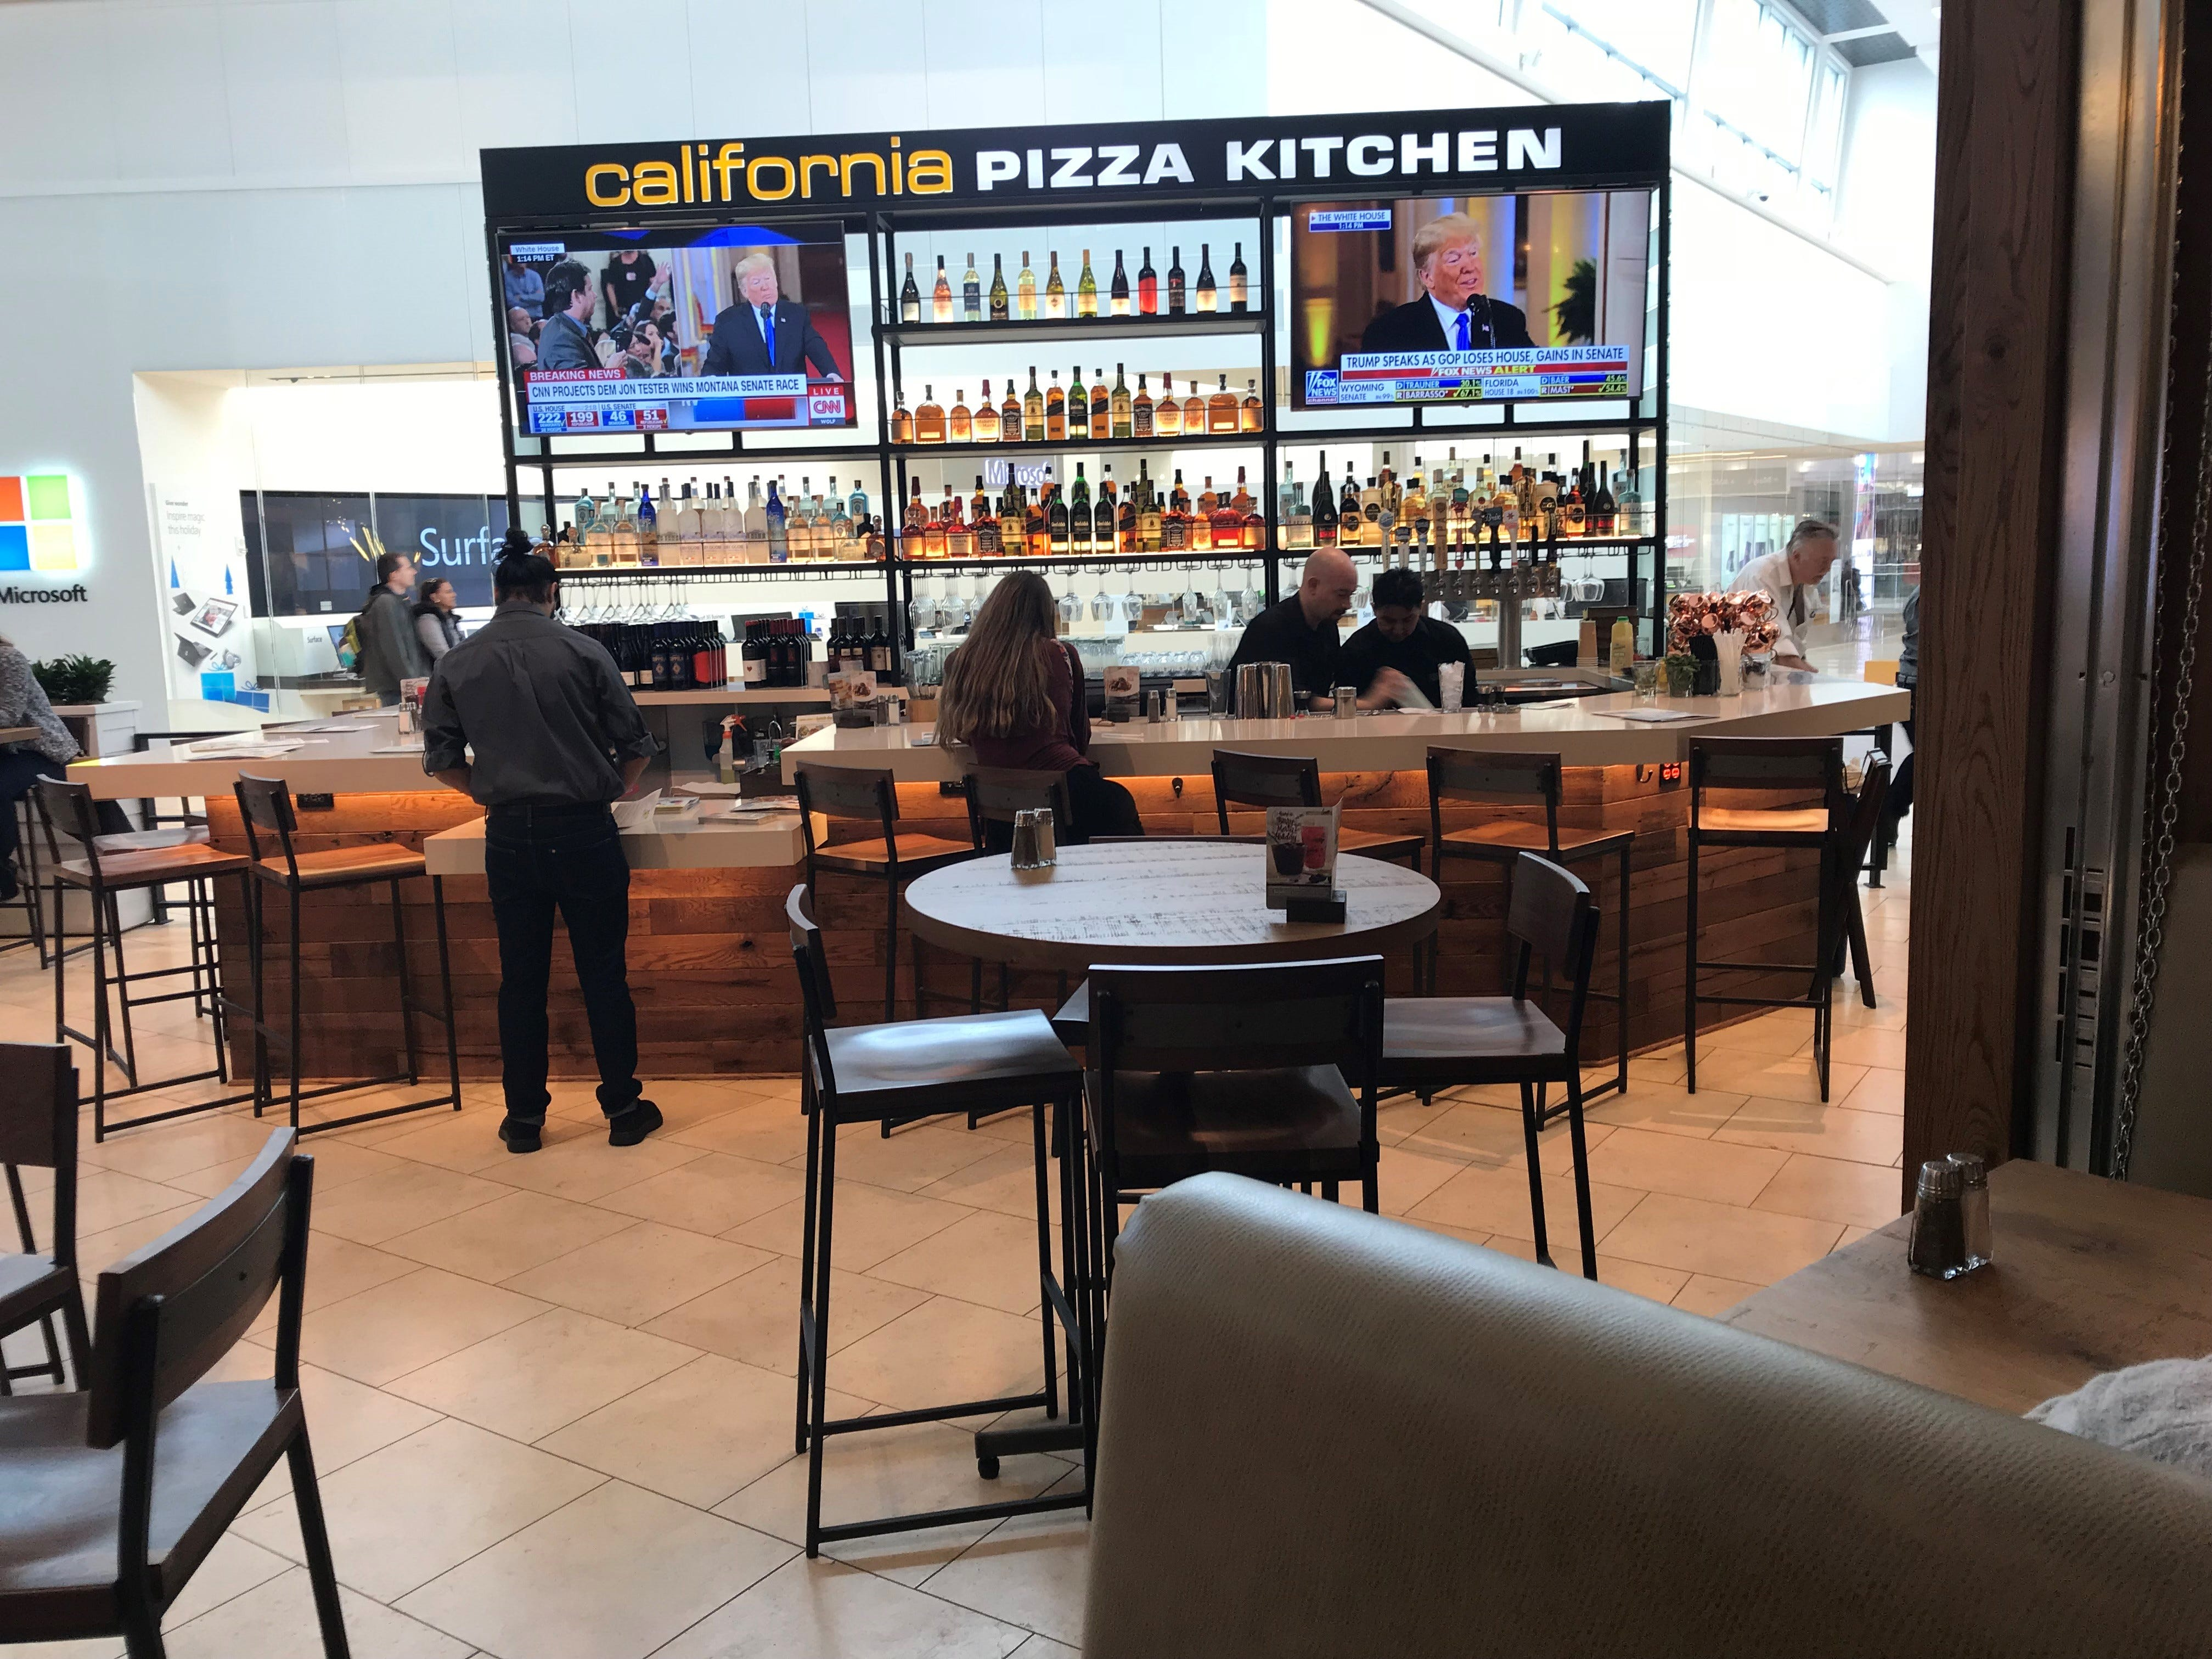 The bar area at the new California Pizza Kitchen